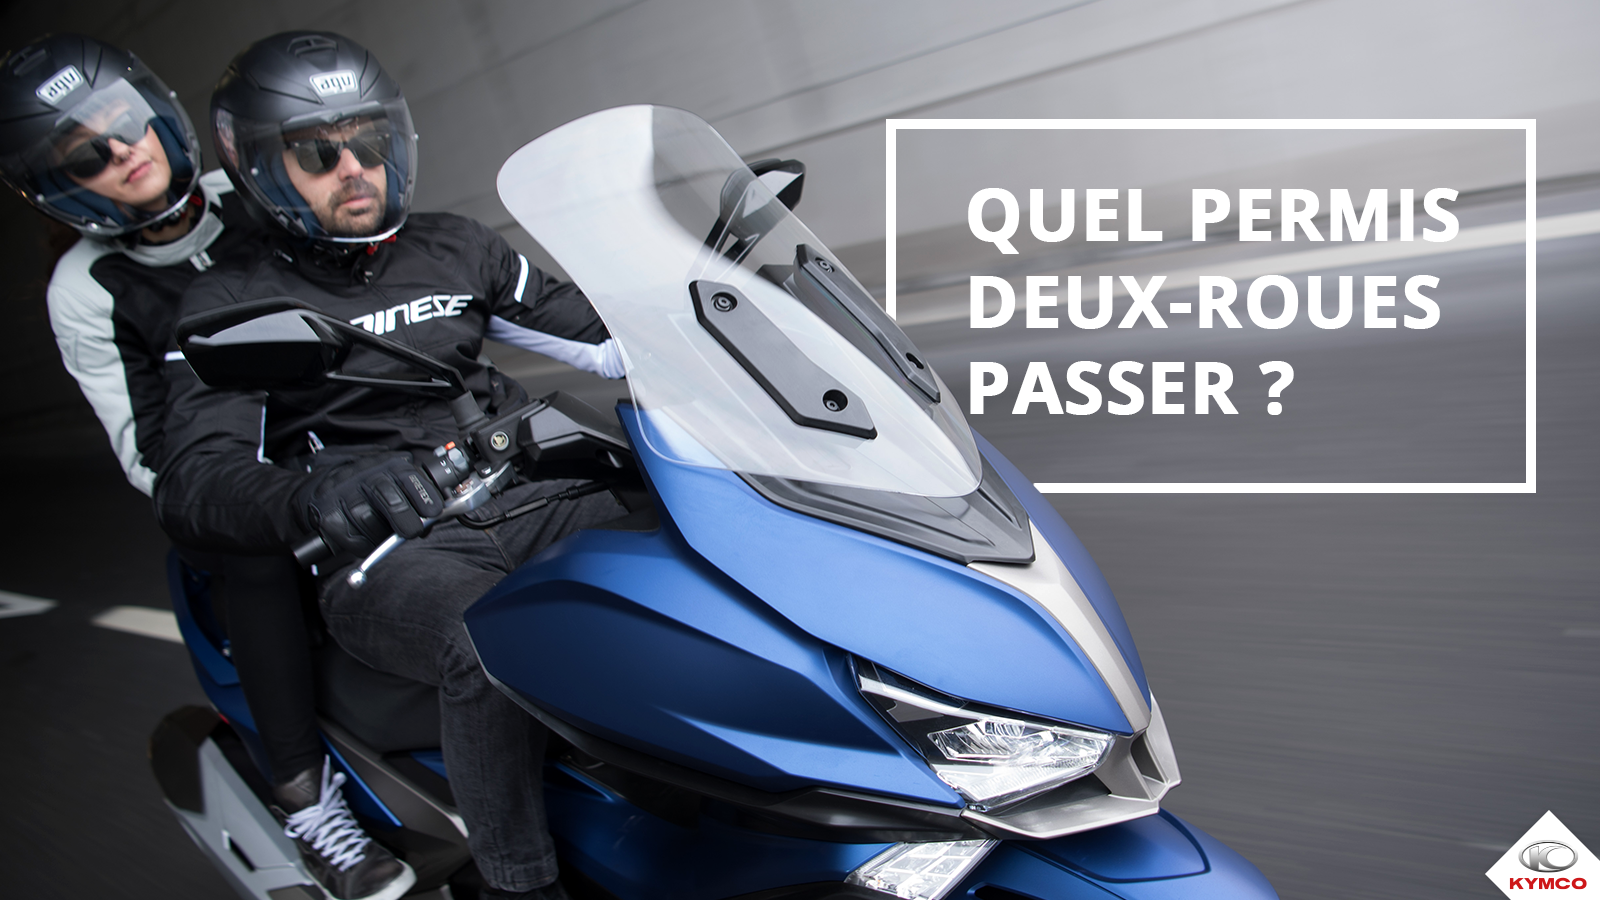 quel-permis-passer-featured2